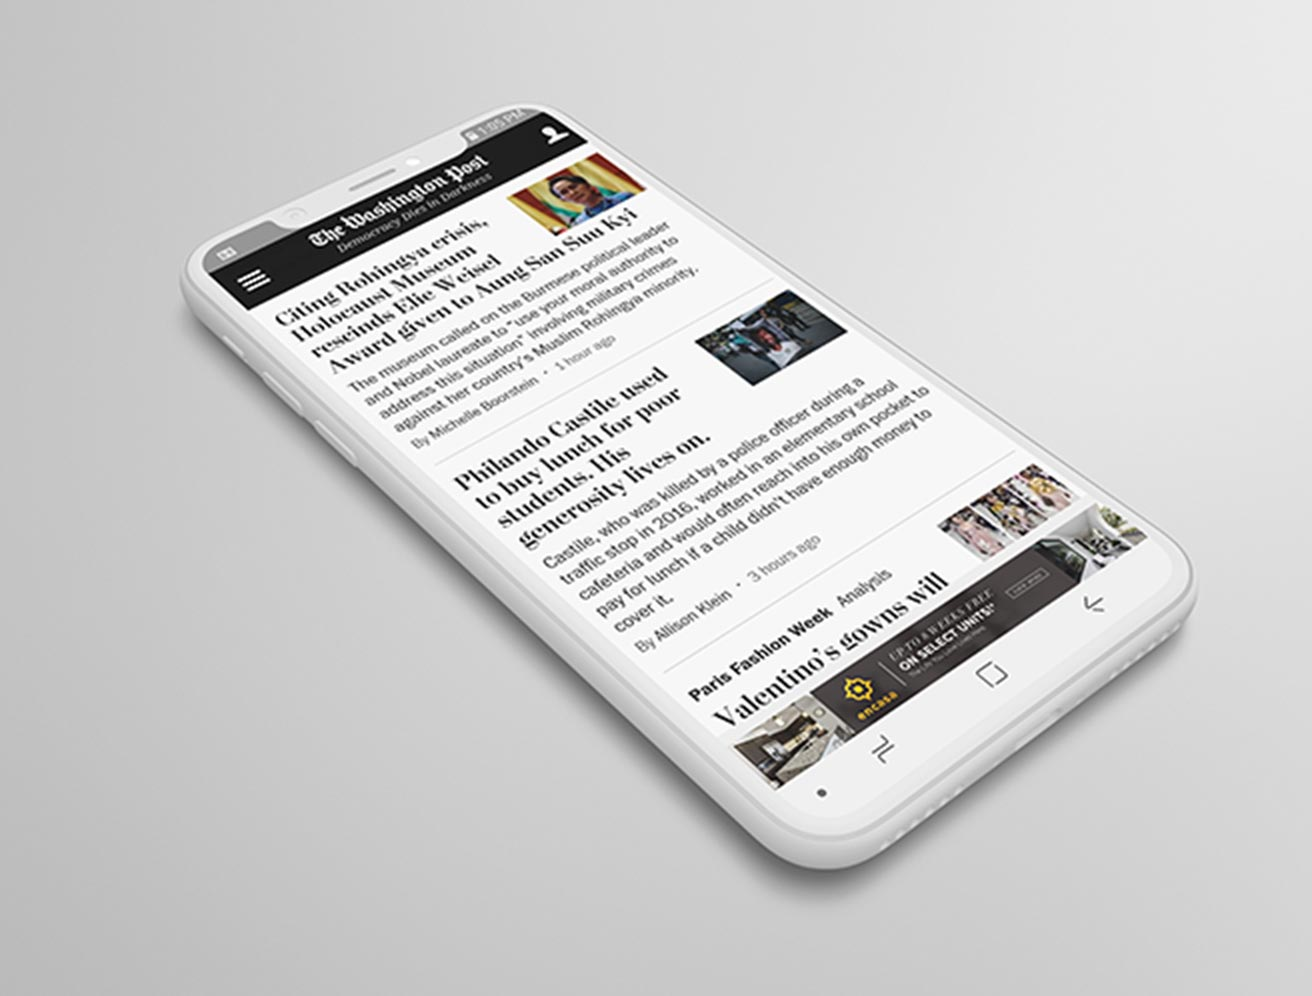 Mobile Phone with News Website